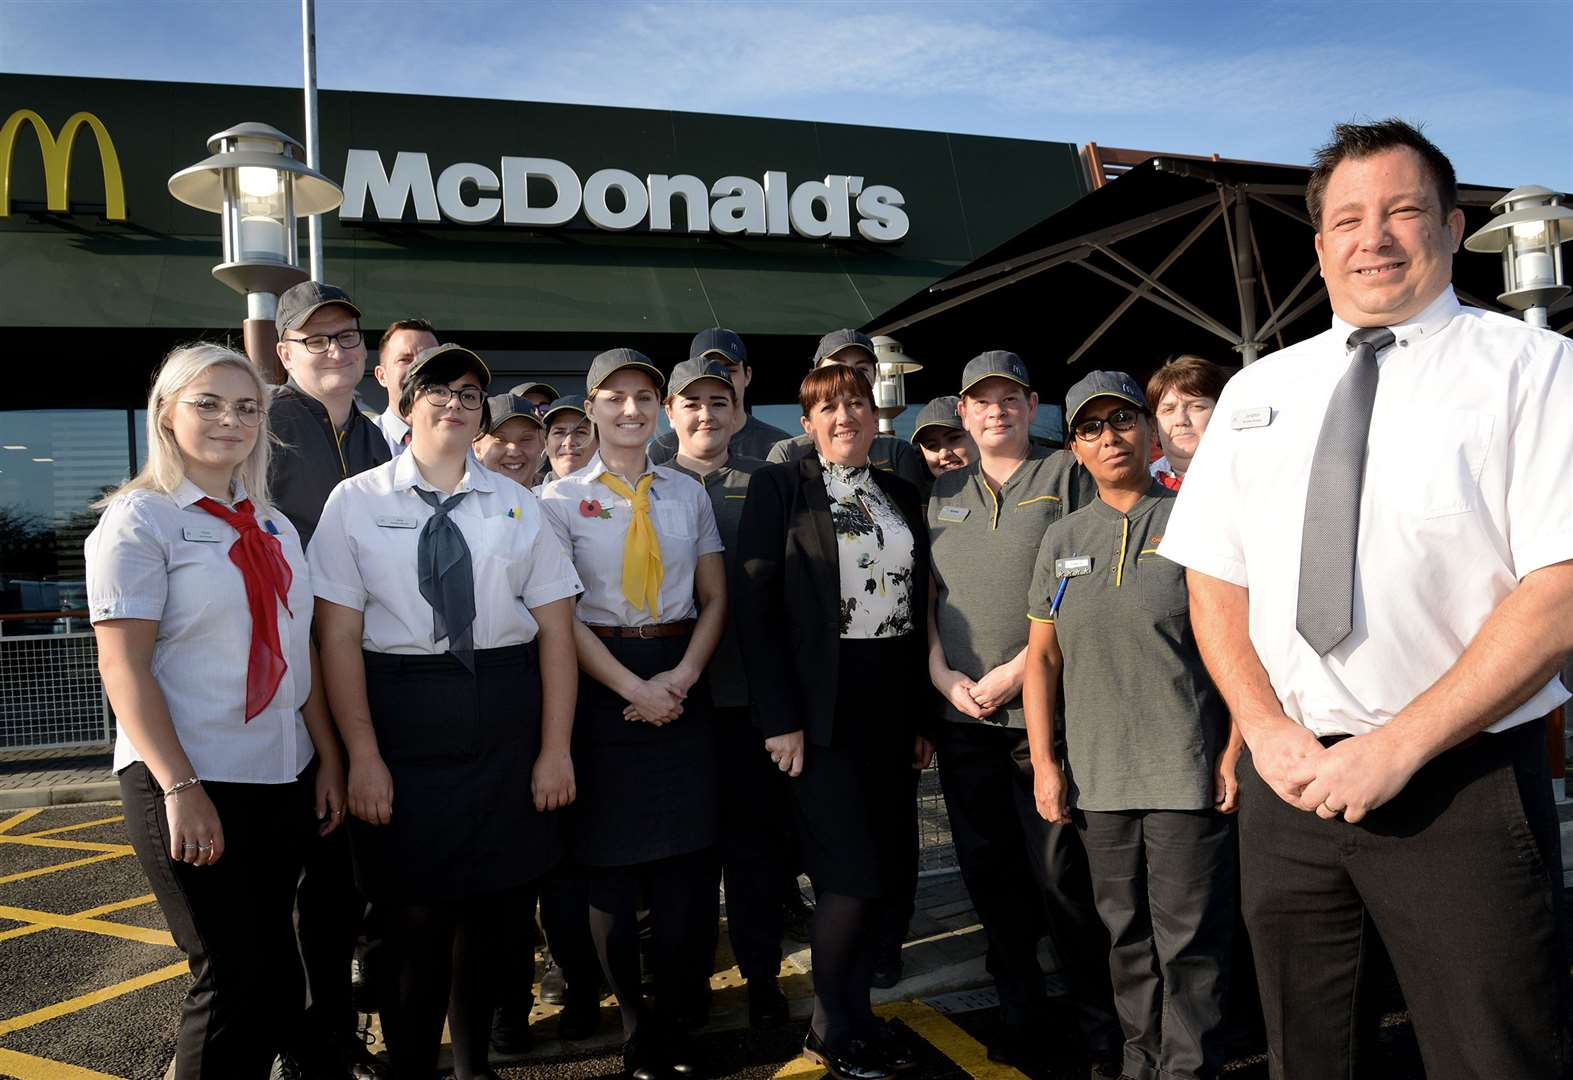 McDonald's restaurant on the A1 at Colsterworth has opened